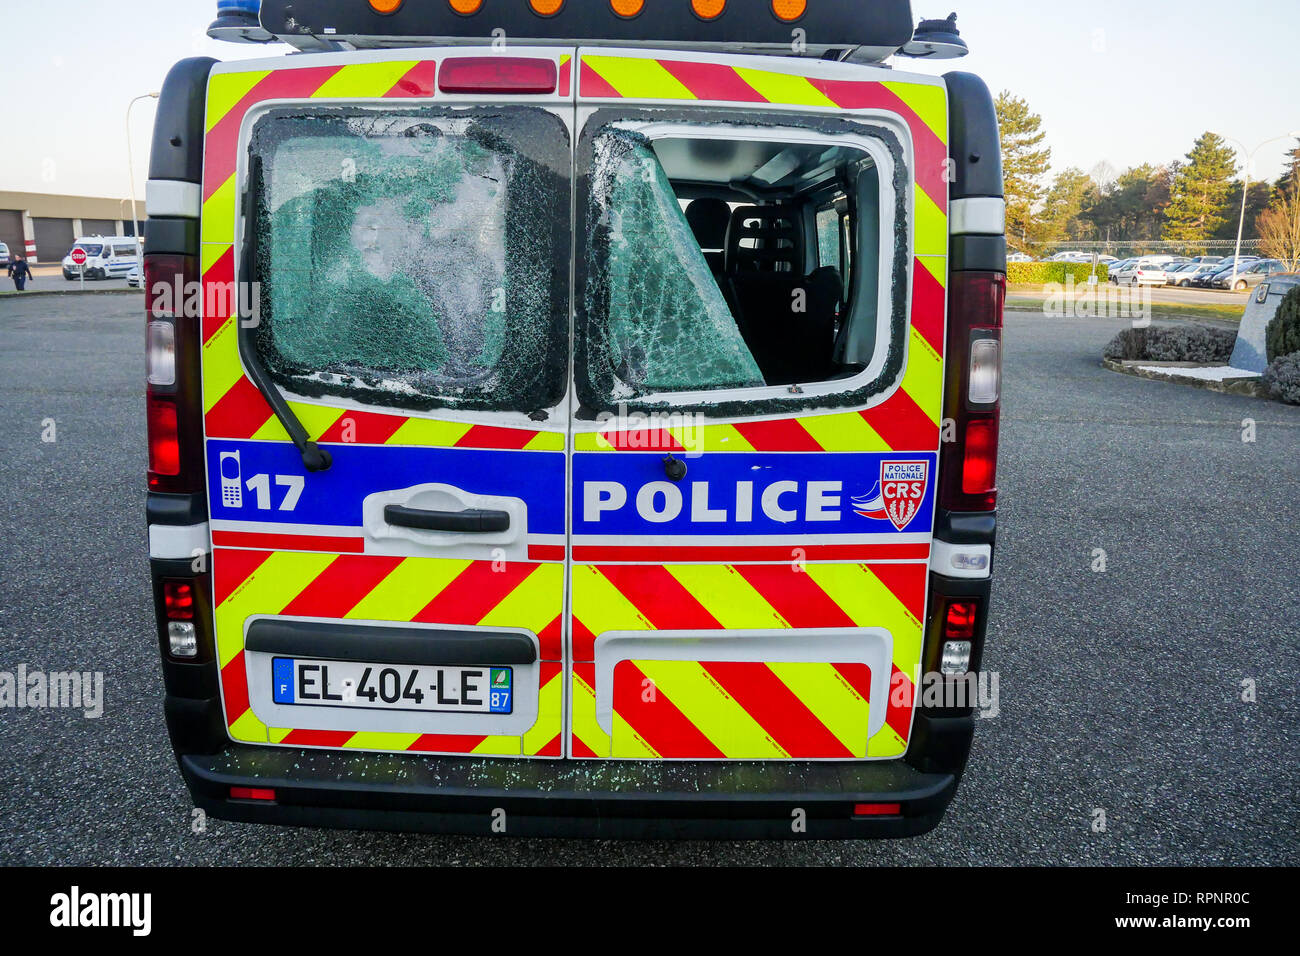 Police vehicle destroyed by the Yellow Jackets, Chassieu, France - Stock Image